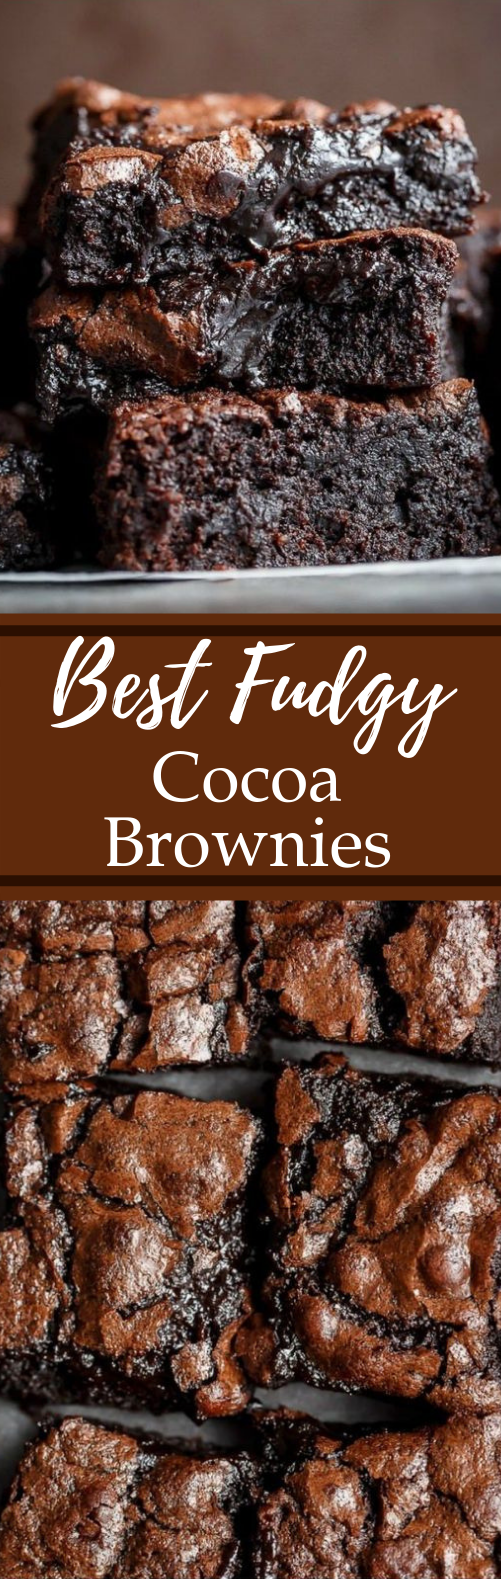 Best Fudgy Cocoa Brownies #desserts #chocolate